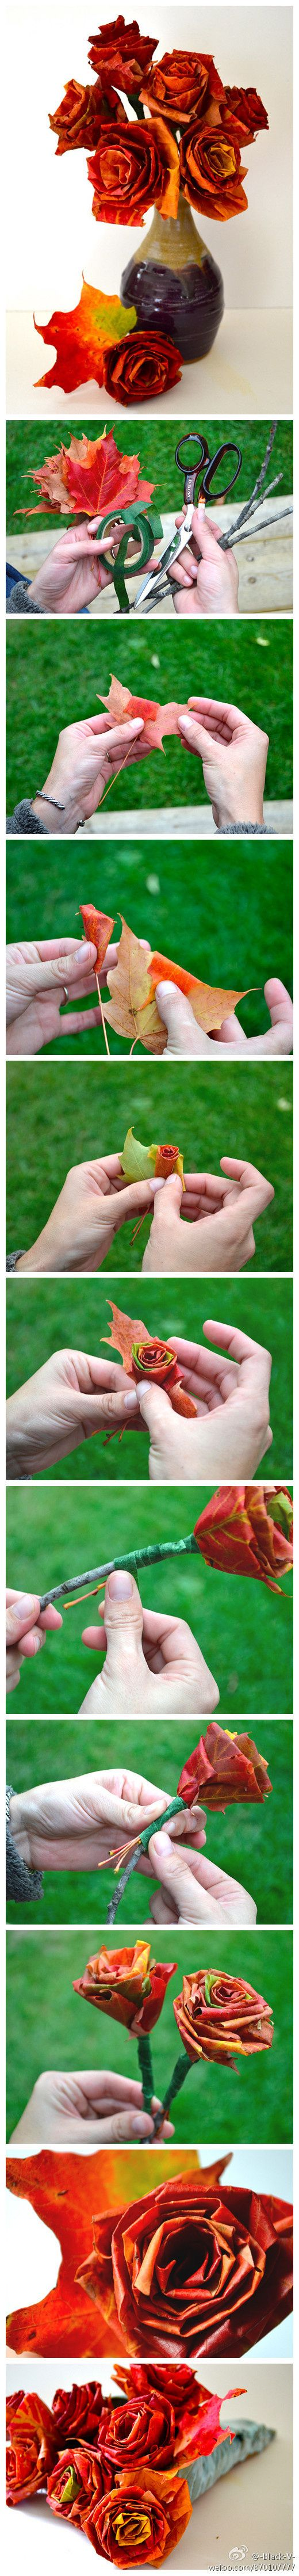 Autumn roses craft